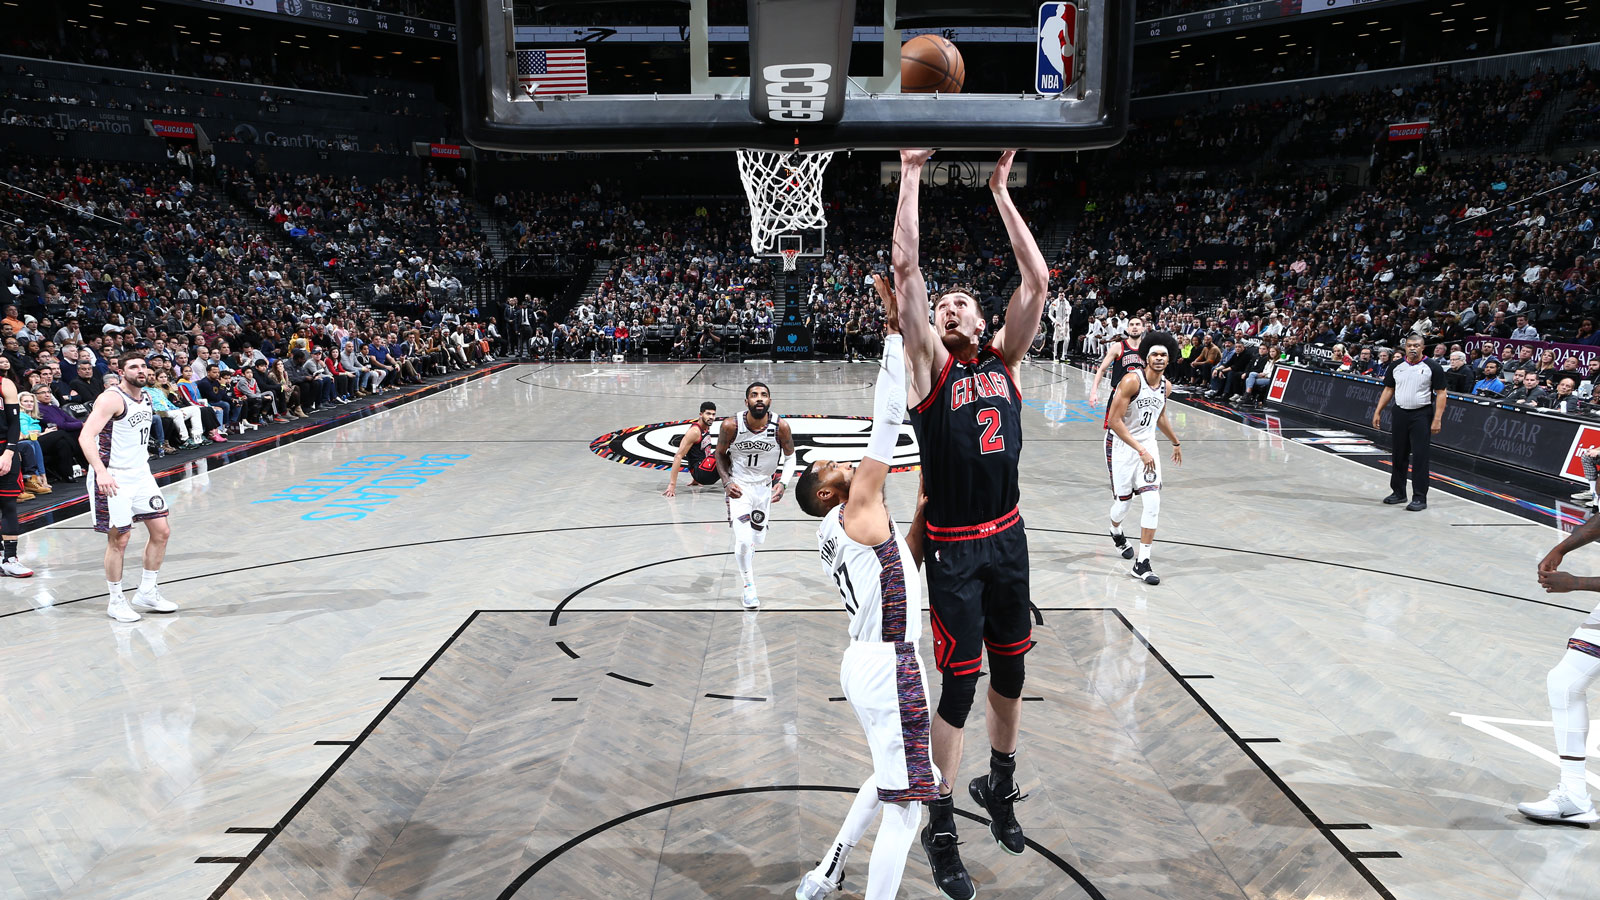 Kornet goes up to shoot against the Nets